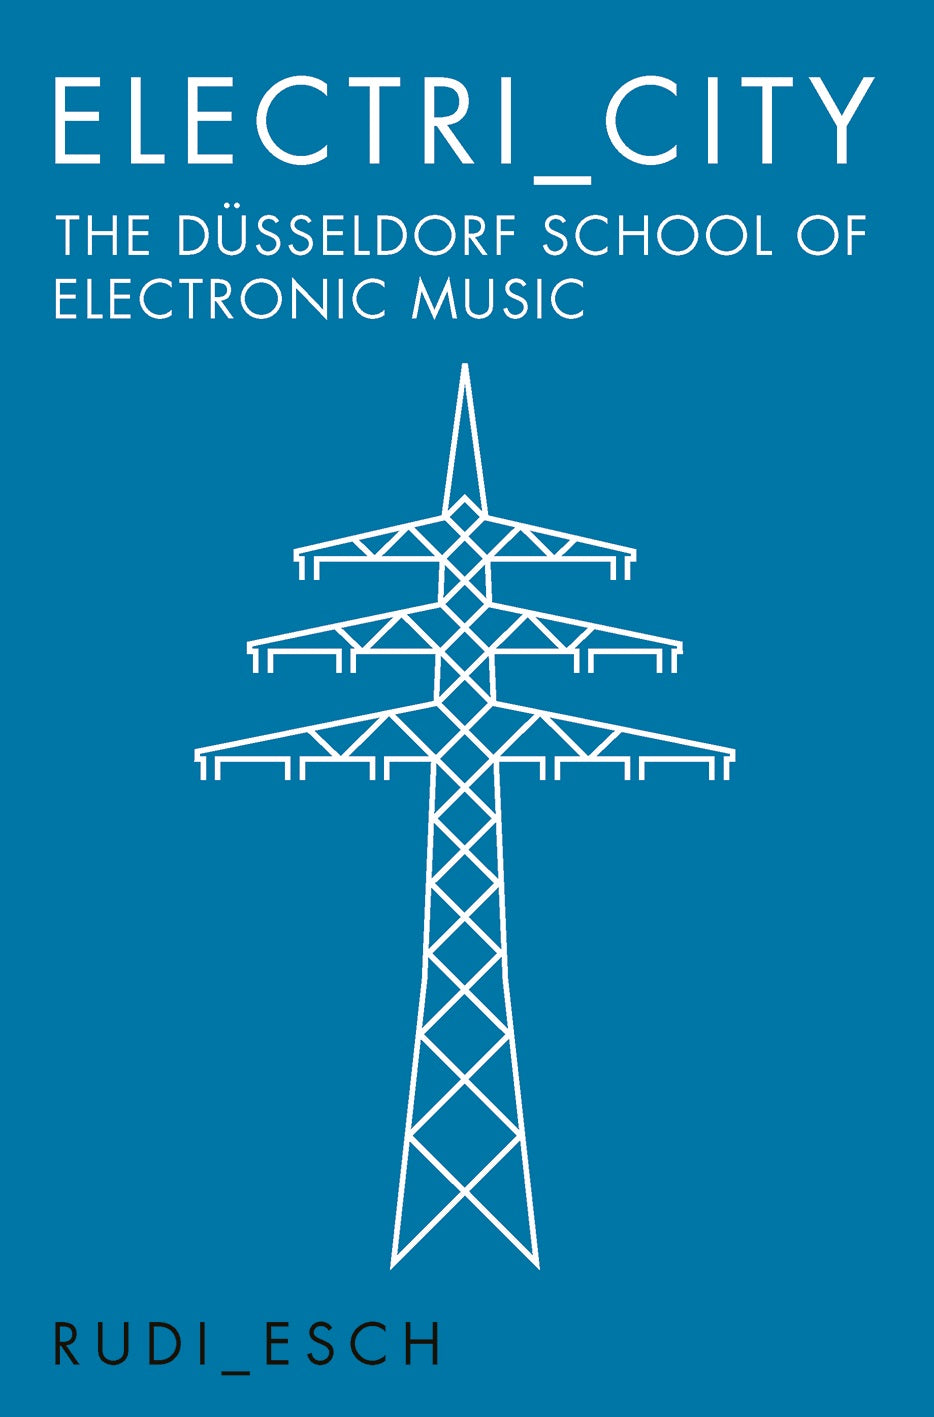 Electri_City: The Duesseldorf School of Electronic Music